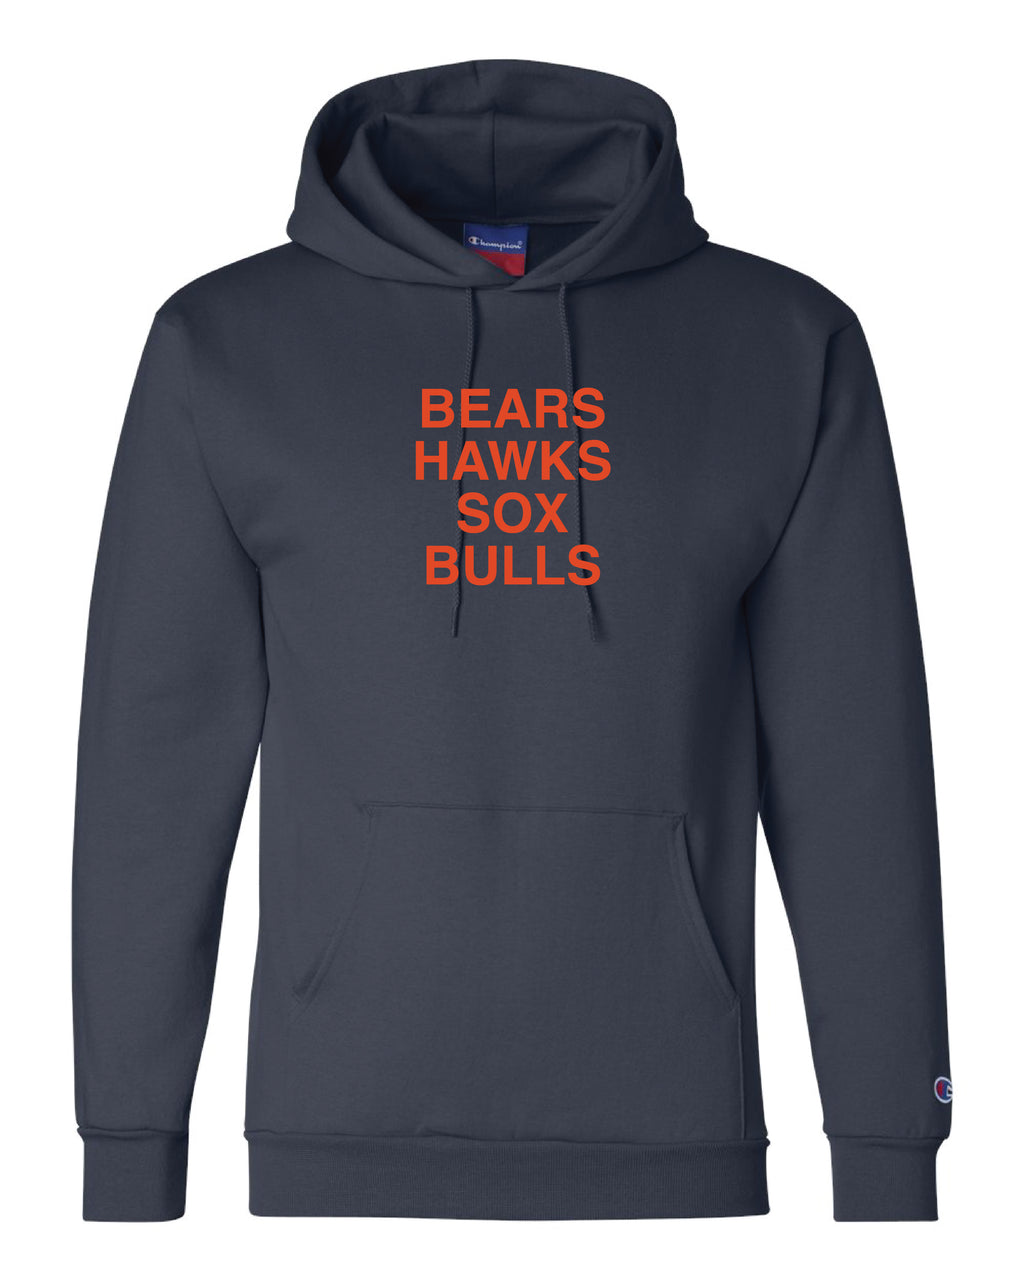 // 7 DAY PRESALE // BEARS HAWKS SOX BULLS HOODIE - NAVY